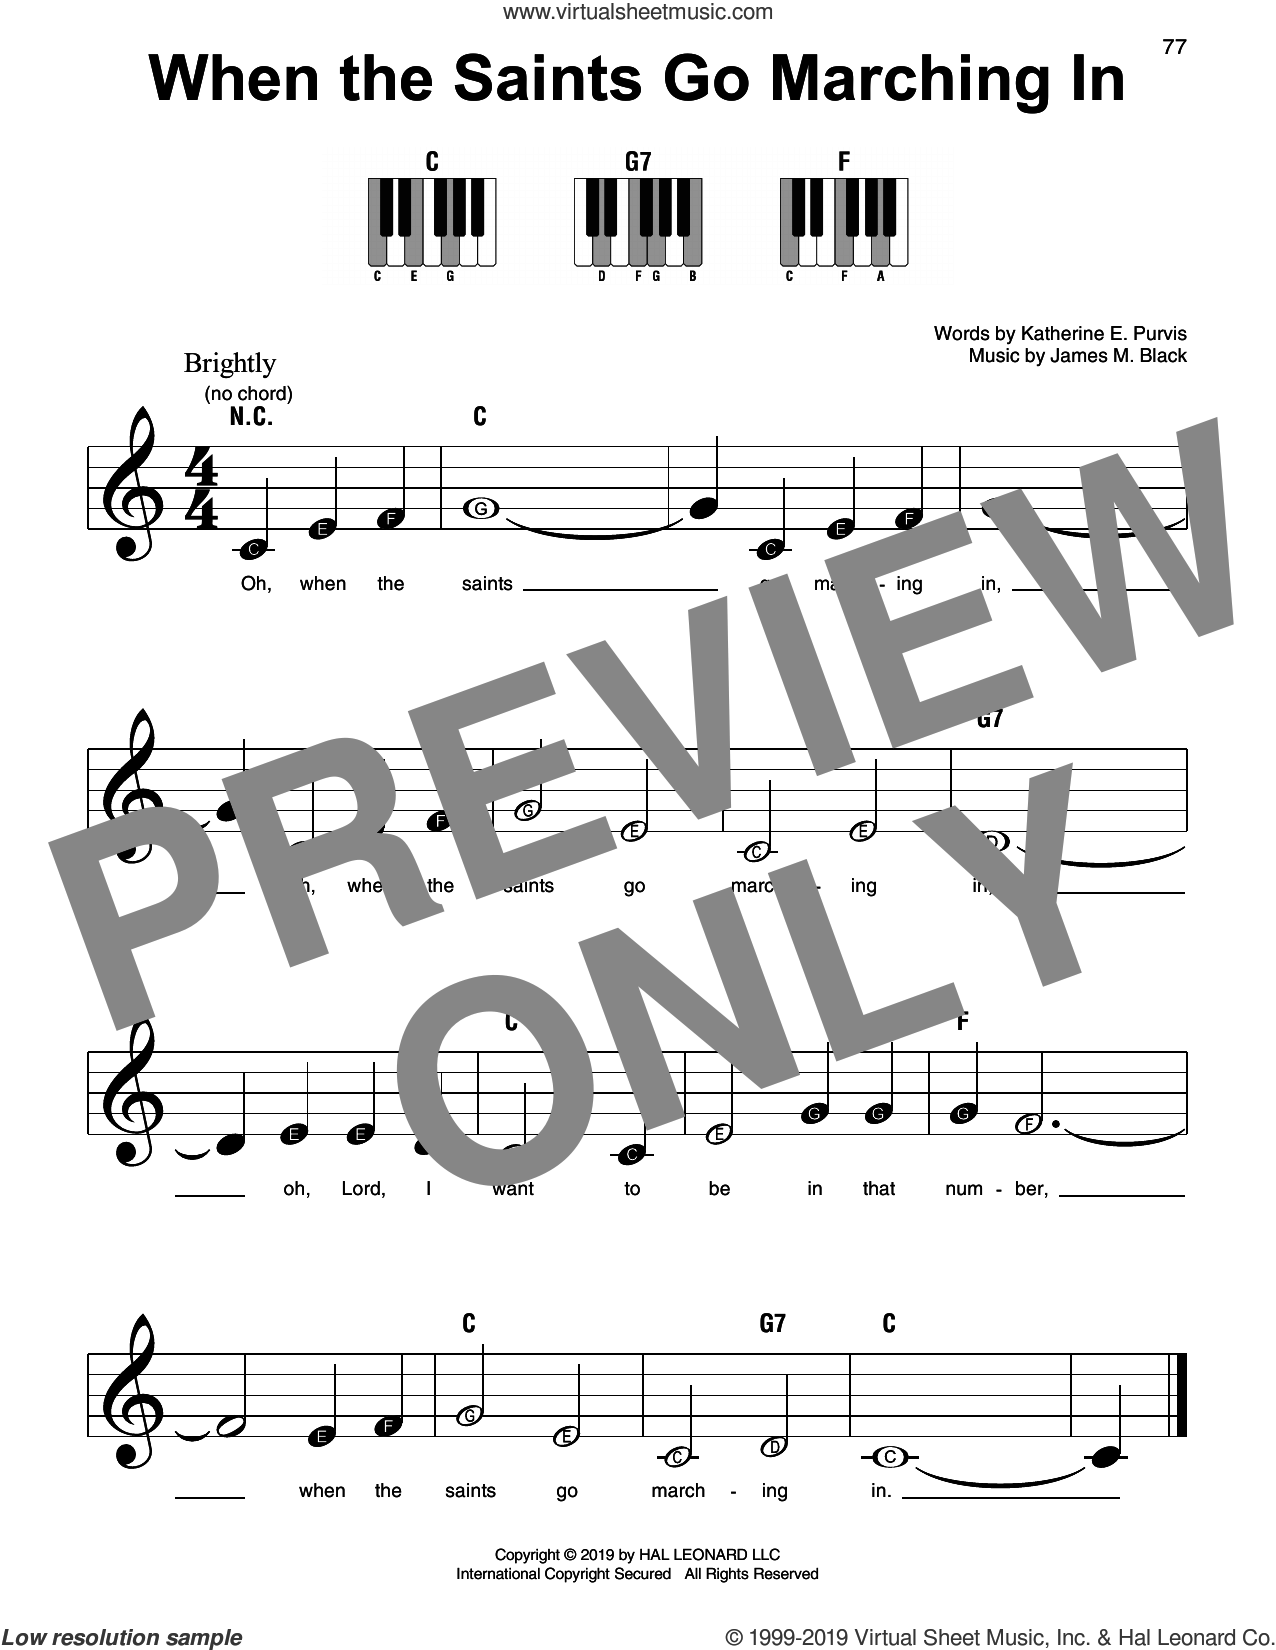 When The Saints Go Marching In sheet music for piano solo by Katherine E. Purvis and James M. Black, beginner skill level